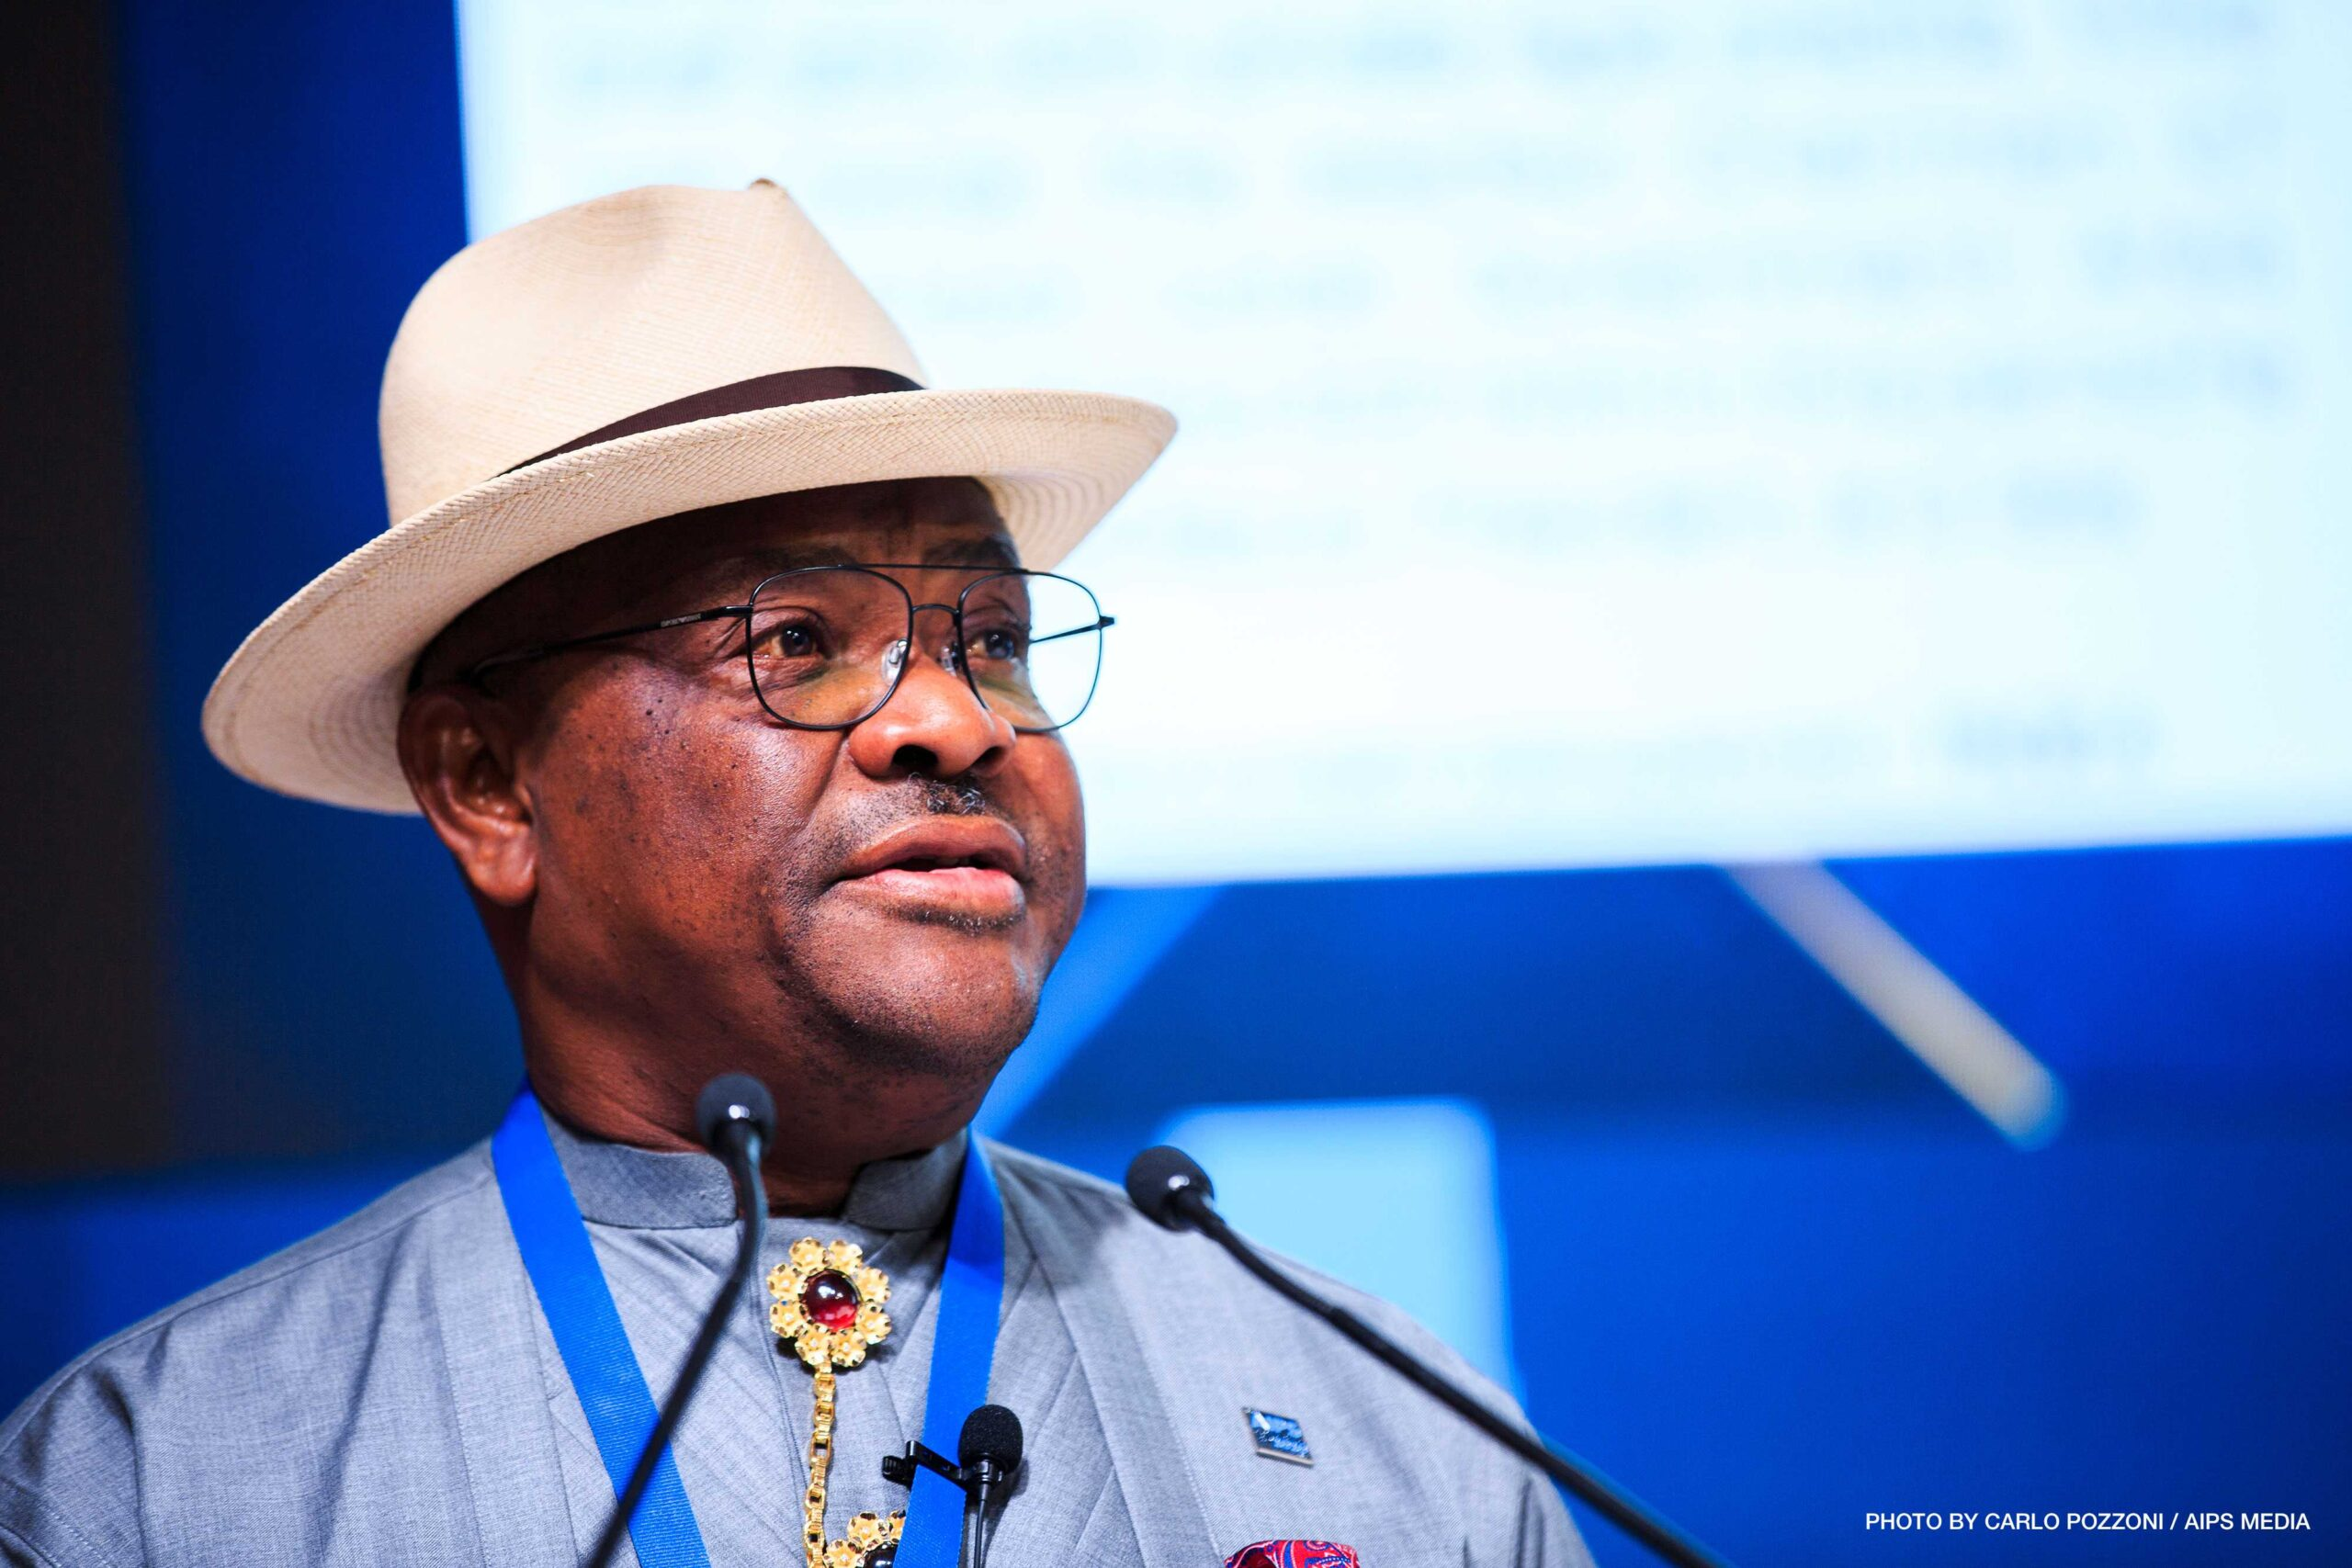 Governor of Rivers State, Nigeria, Nyesom Ezenwo Wike speaking on the opening day of the 83rd AIPS Congress on February 4, 2020. (Photo by Carlo Pozzoni/AIPS Media)